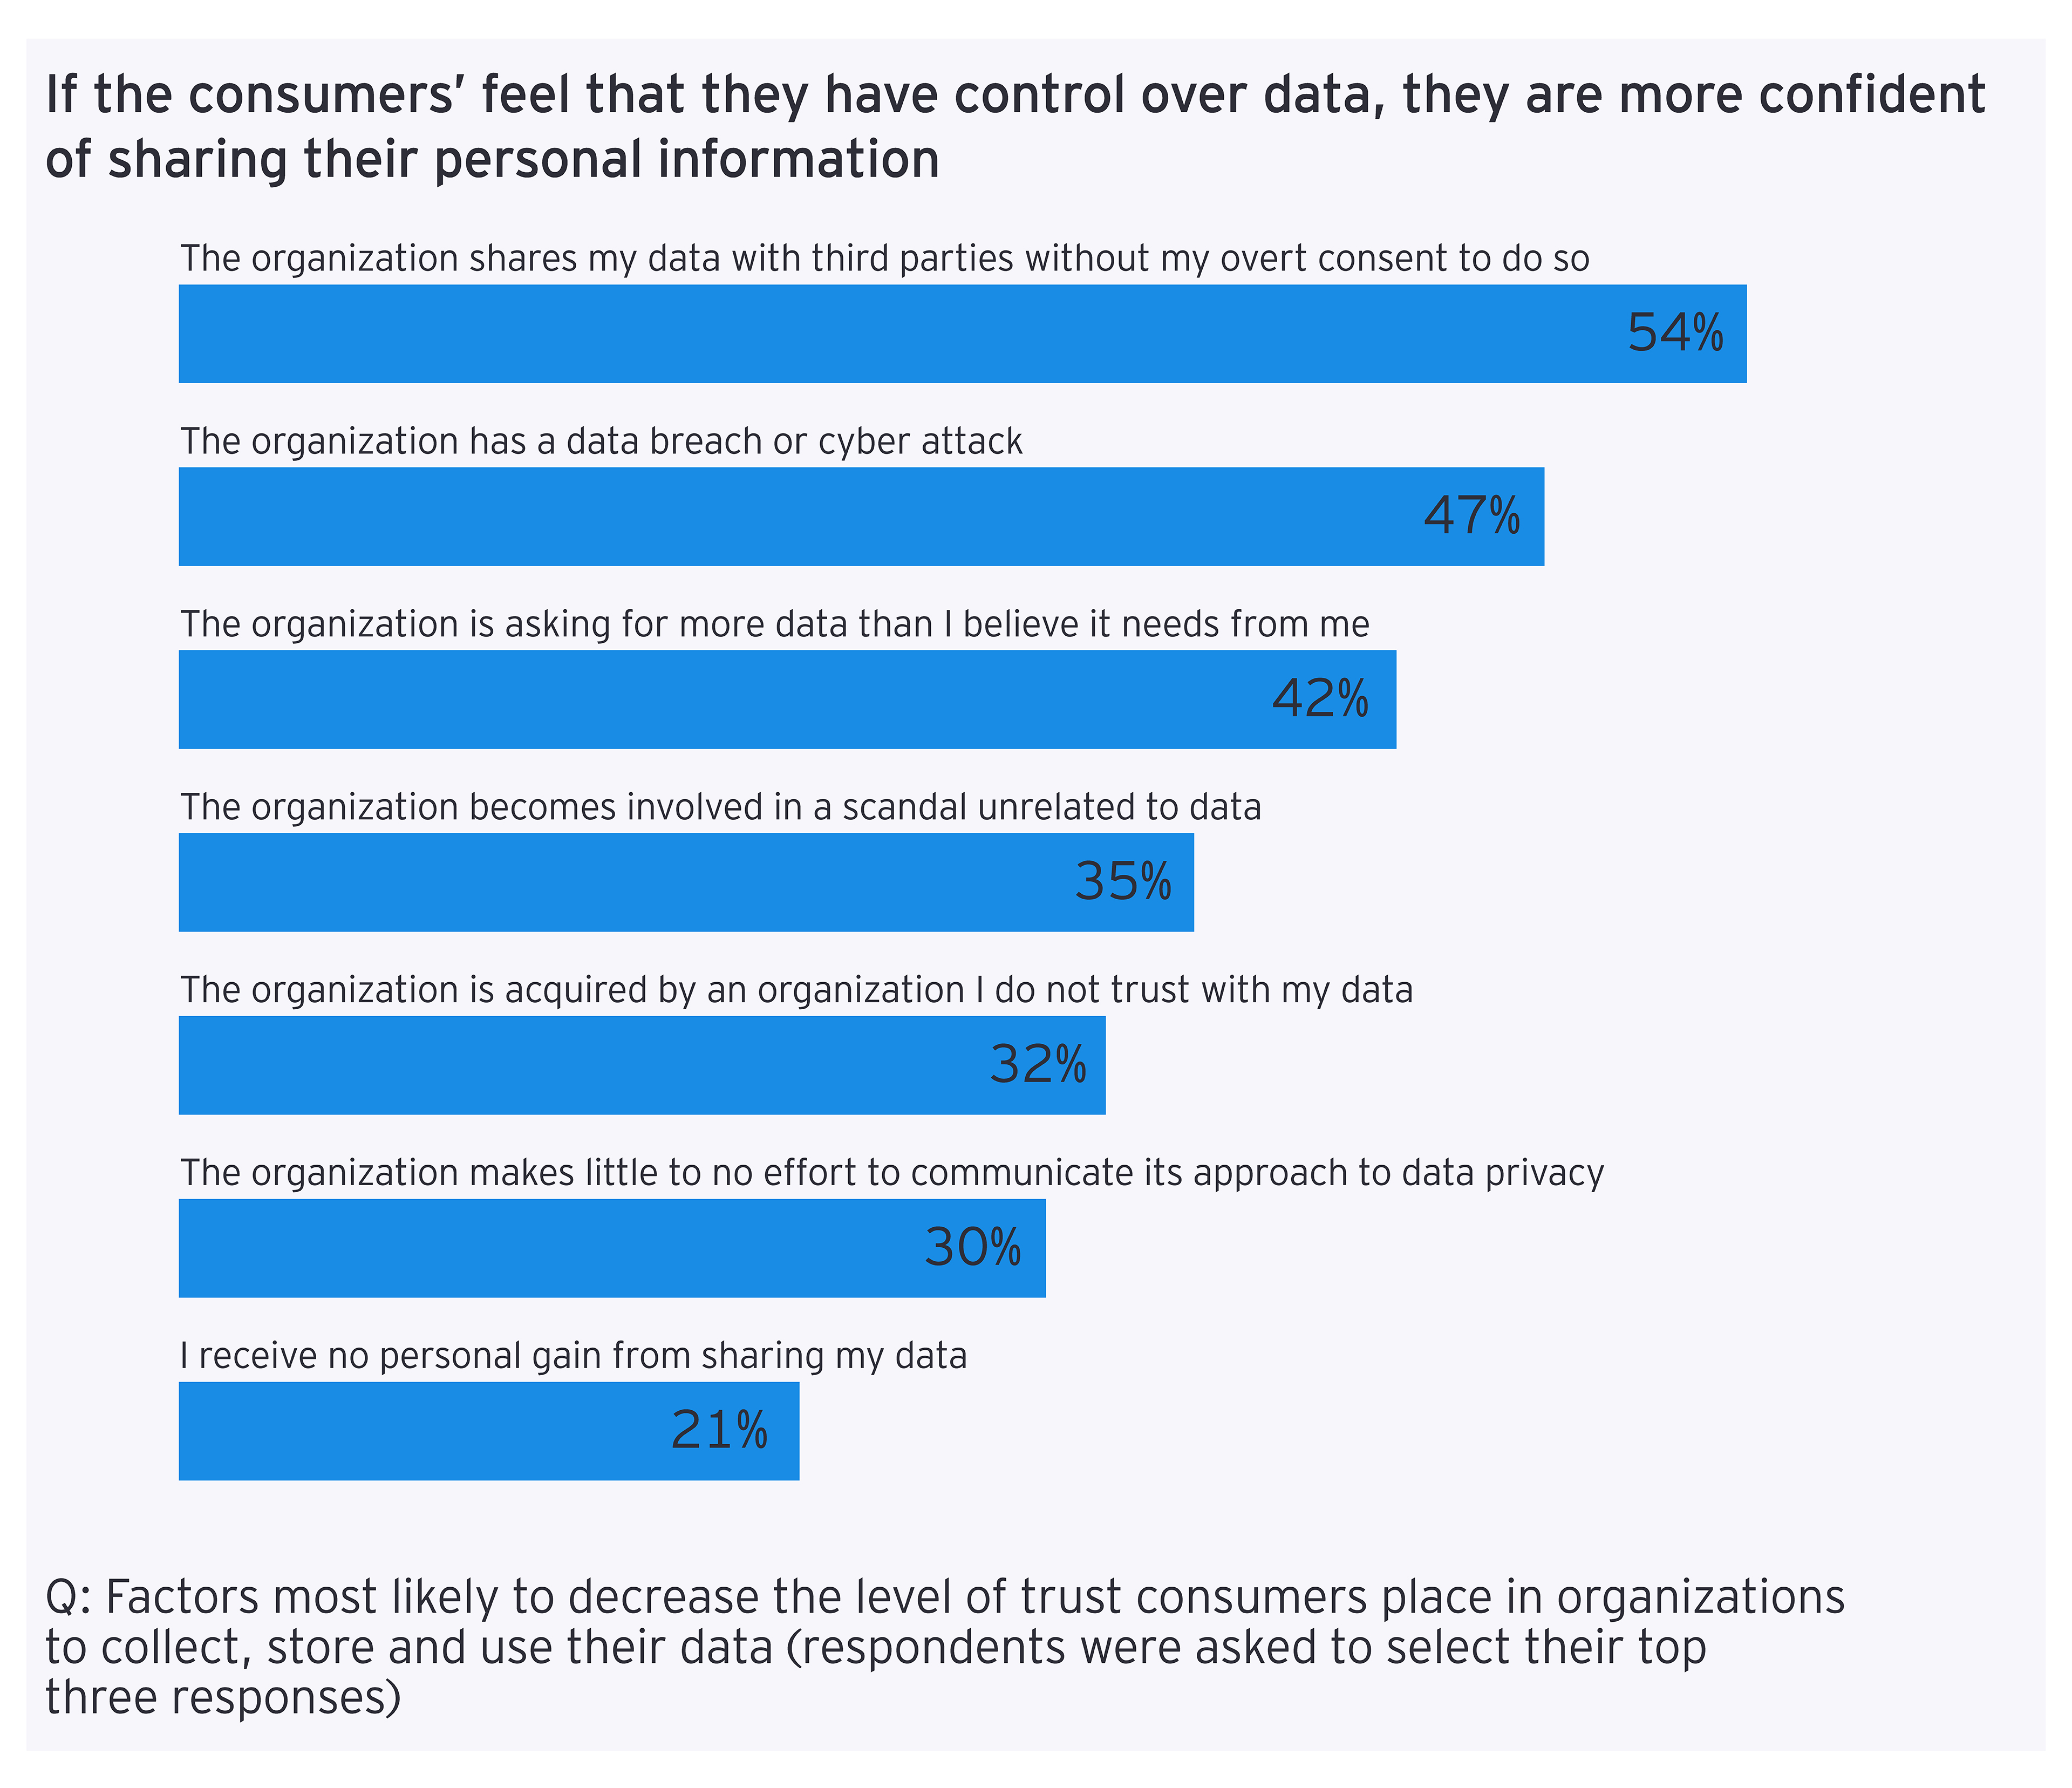 Control over data